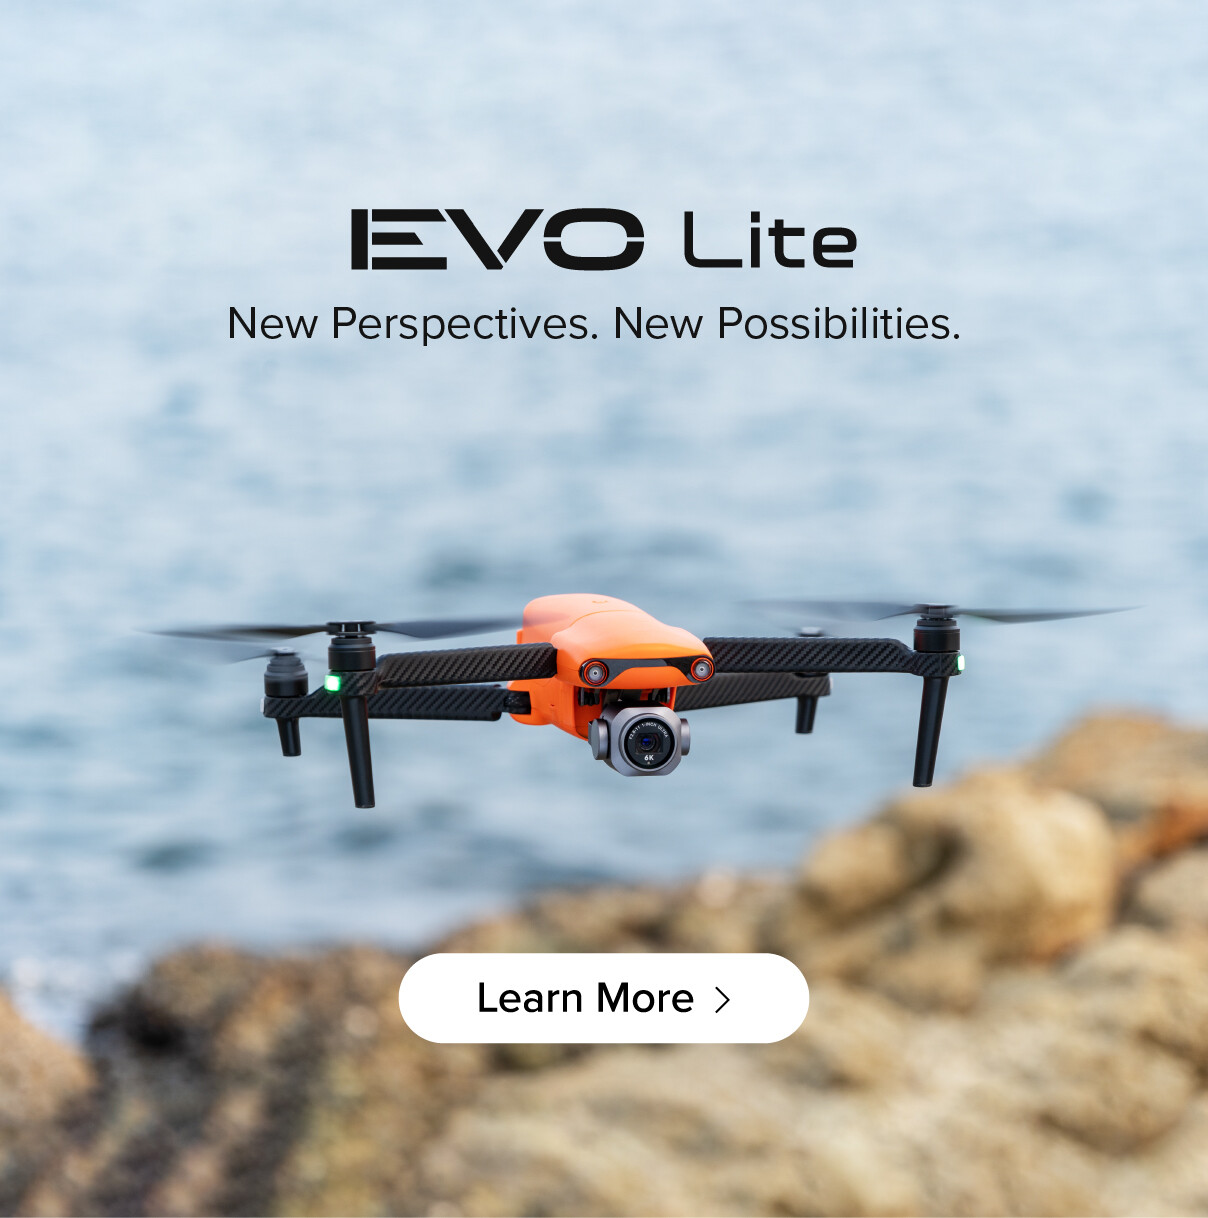 EVO Lite. New Perspectives. New Possibilities.